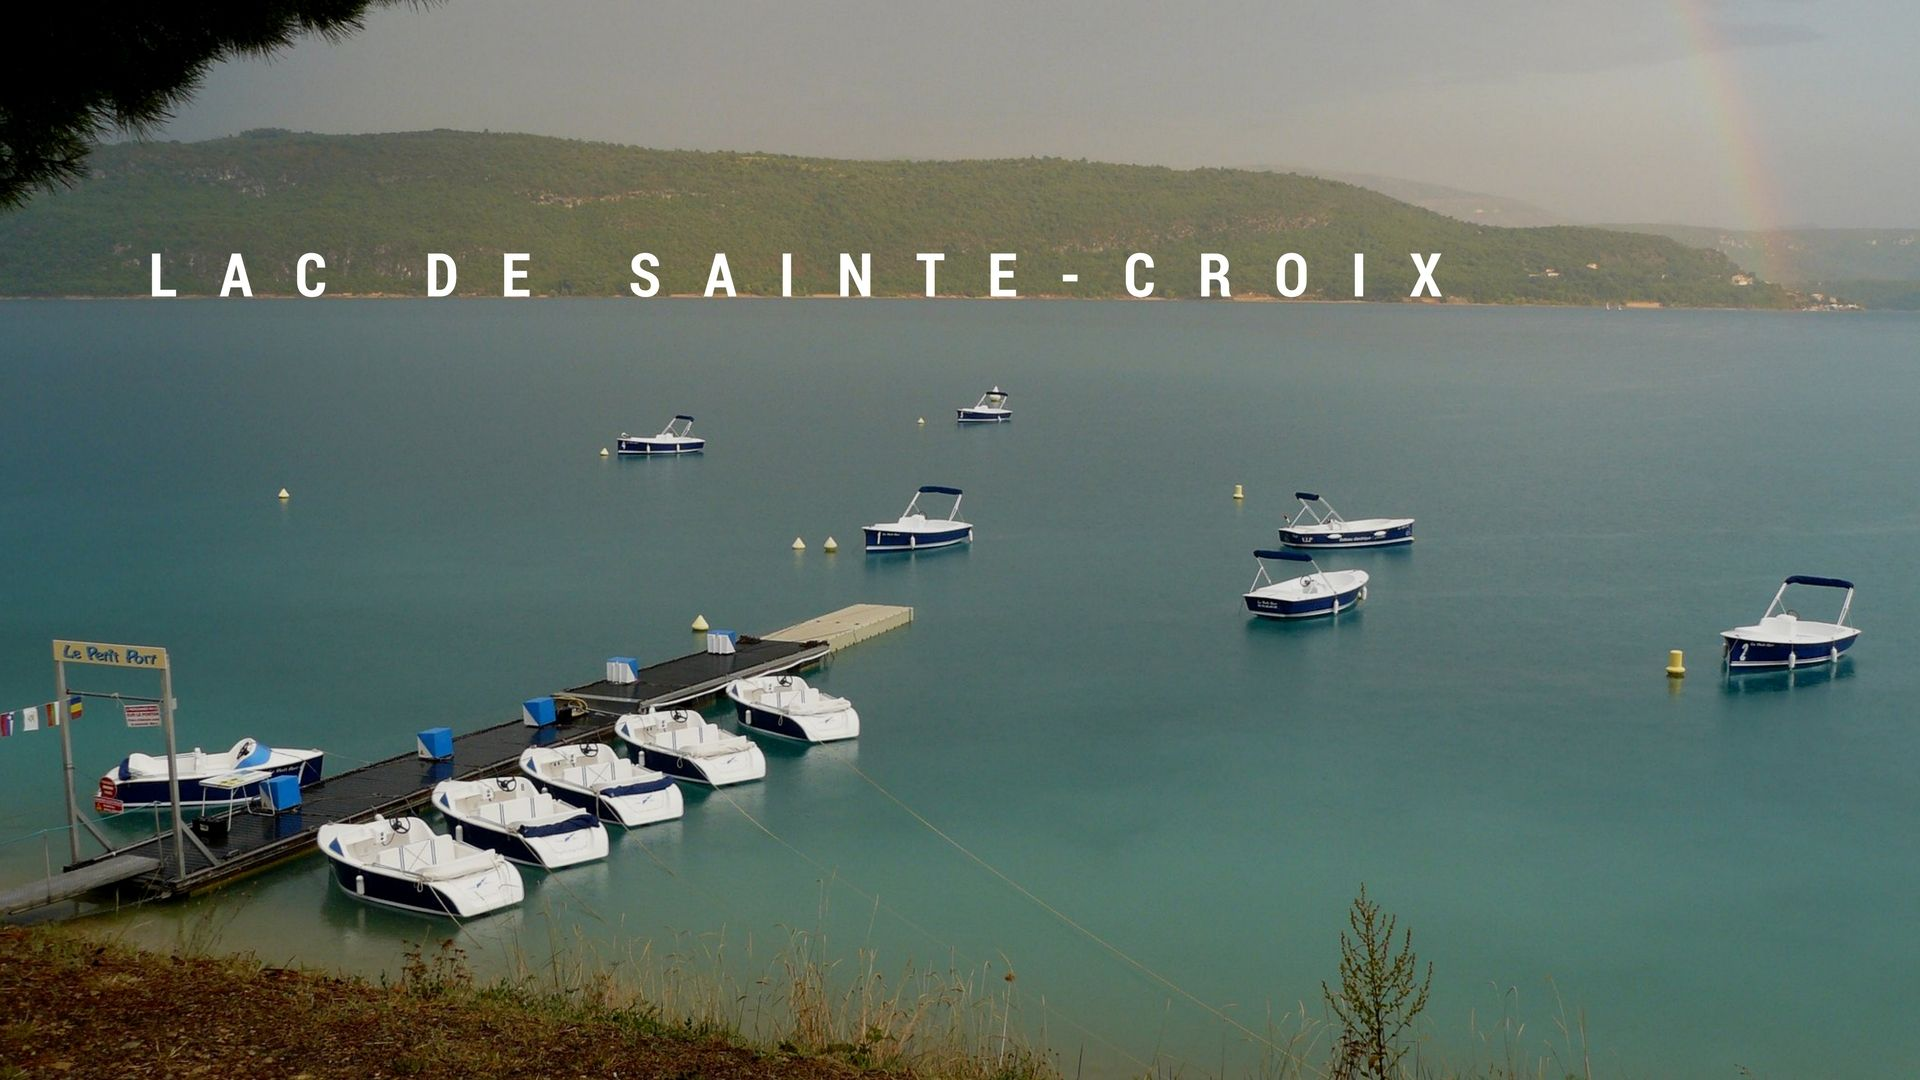 sainte croix lake electric boat